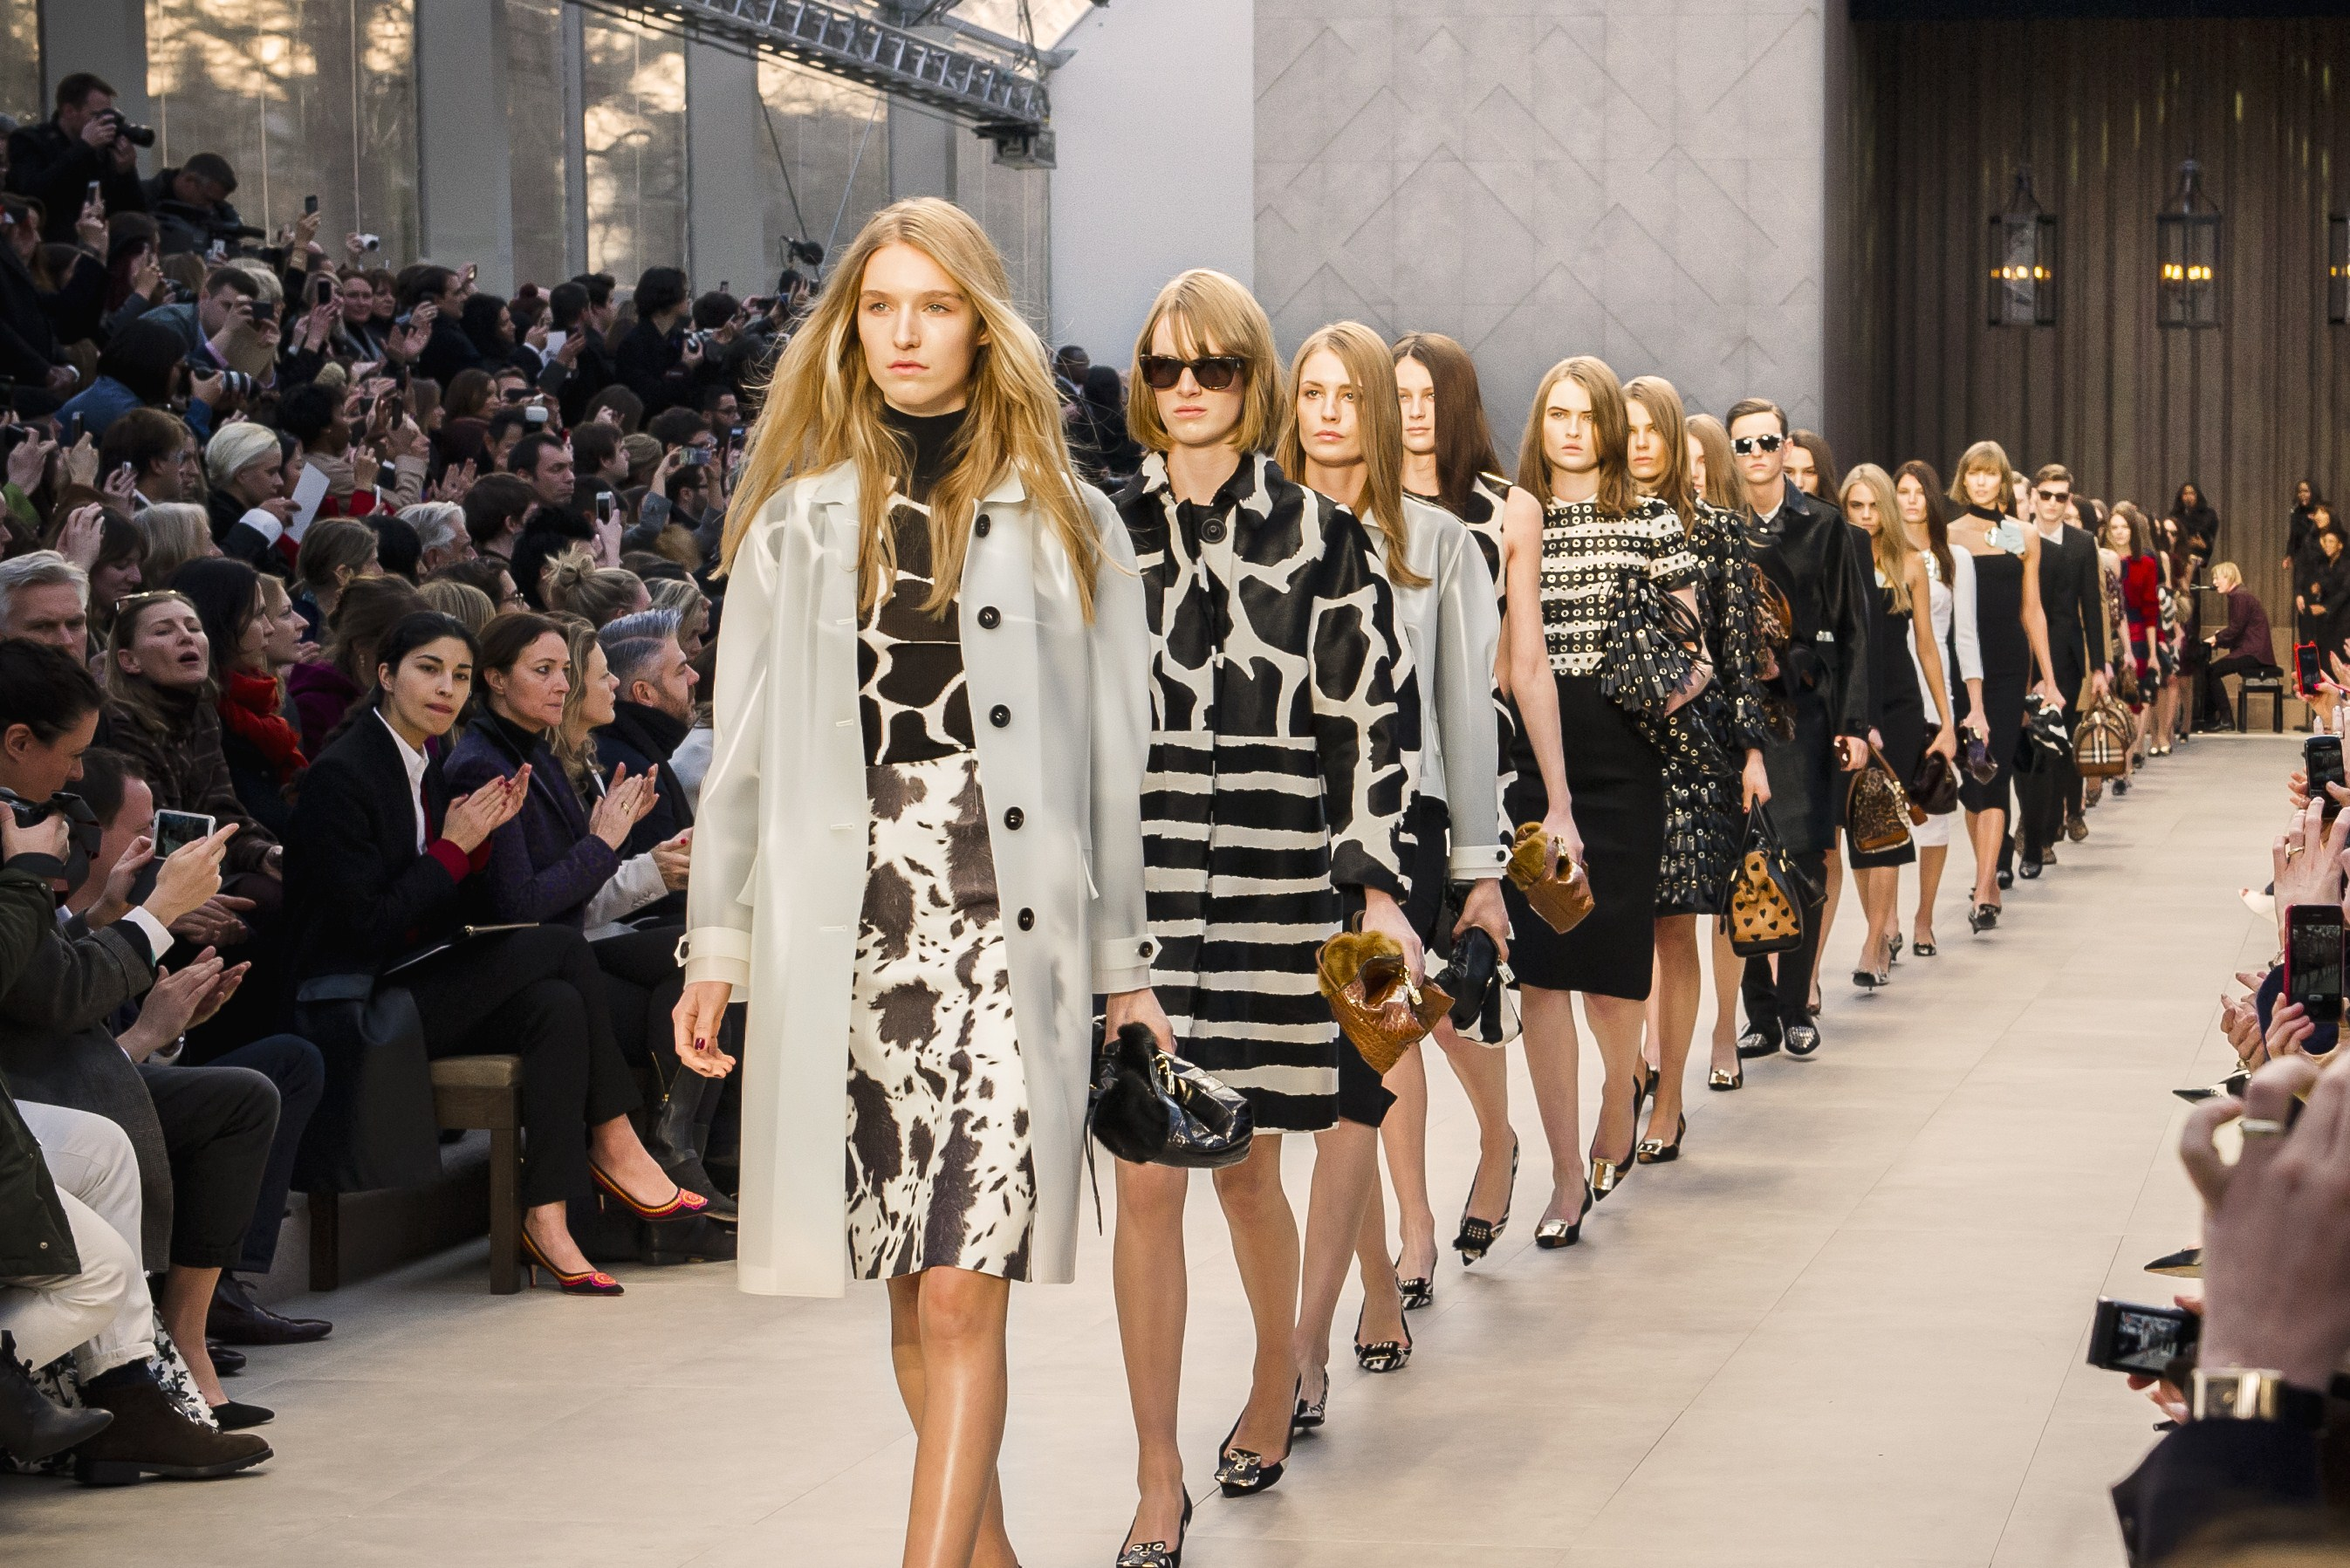 London Fashion Week 2013: Burberry Prorsum, cuori e animalier per l'inverno